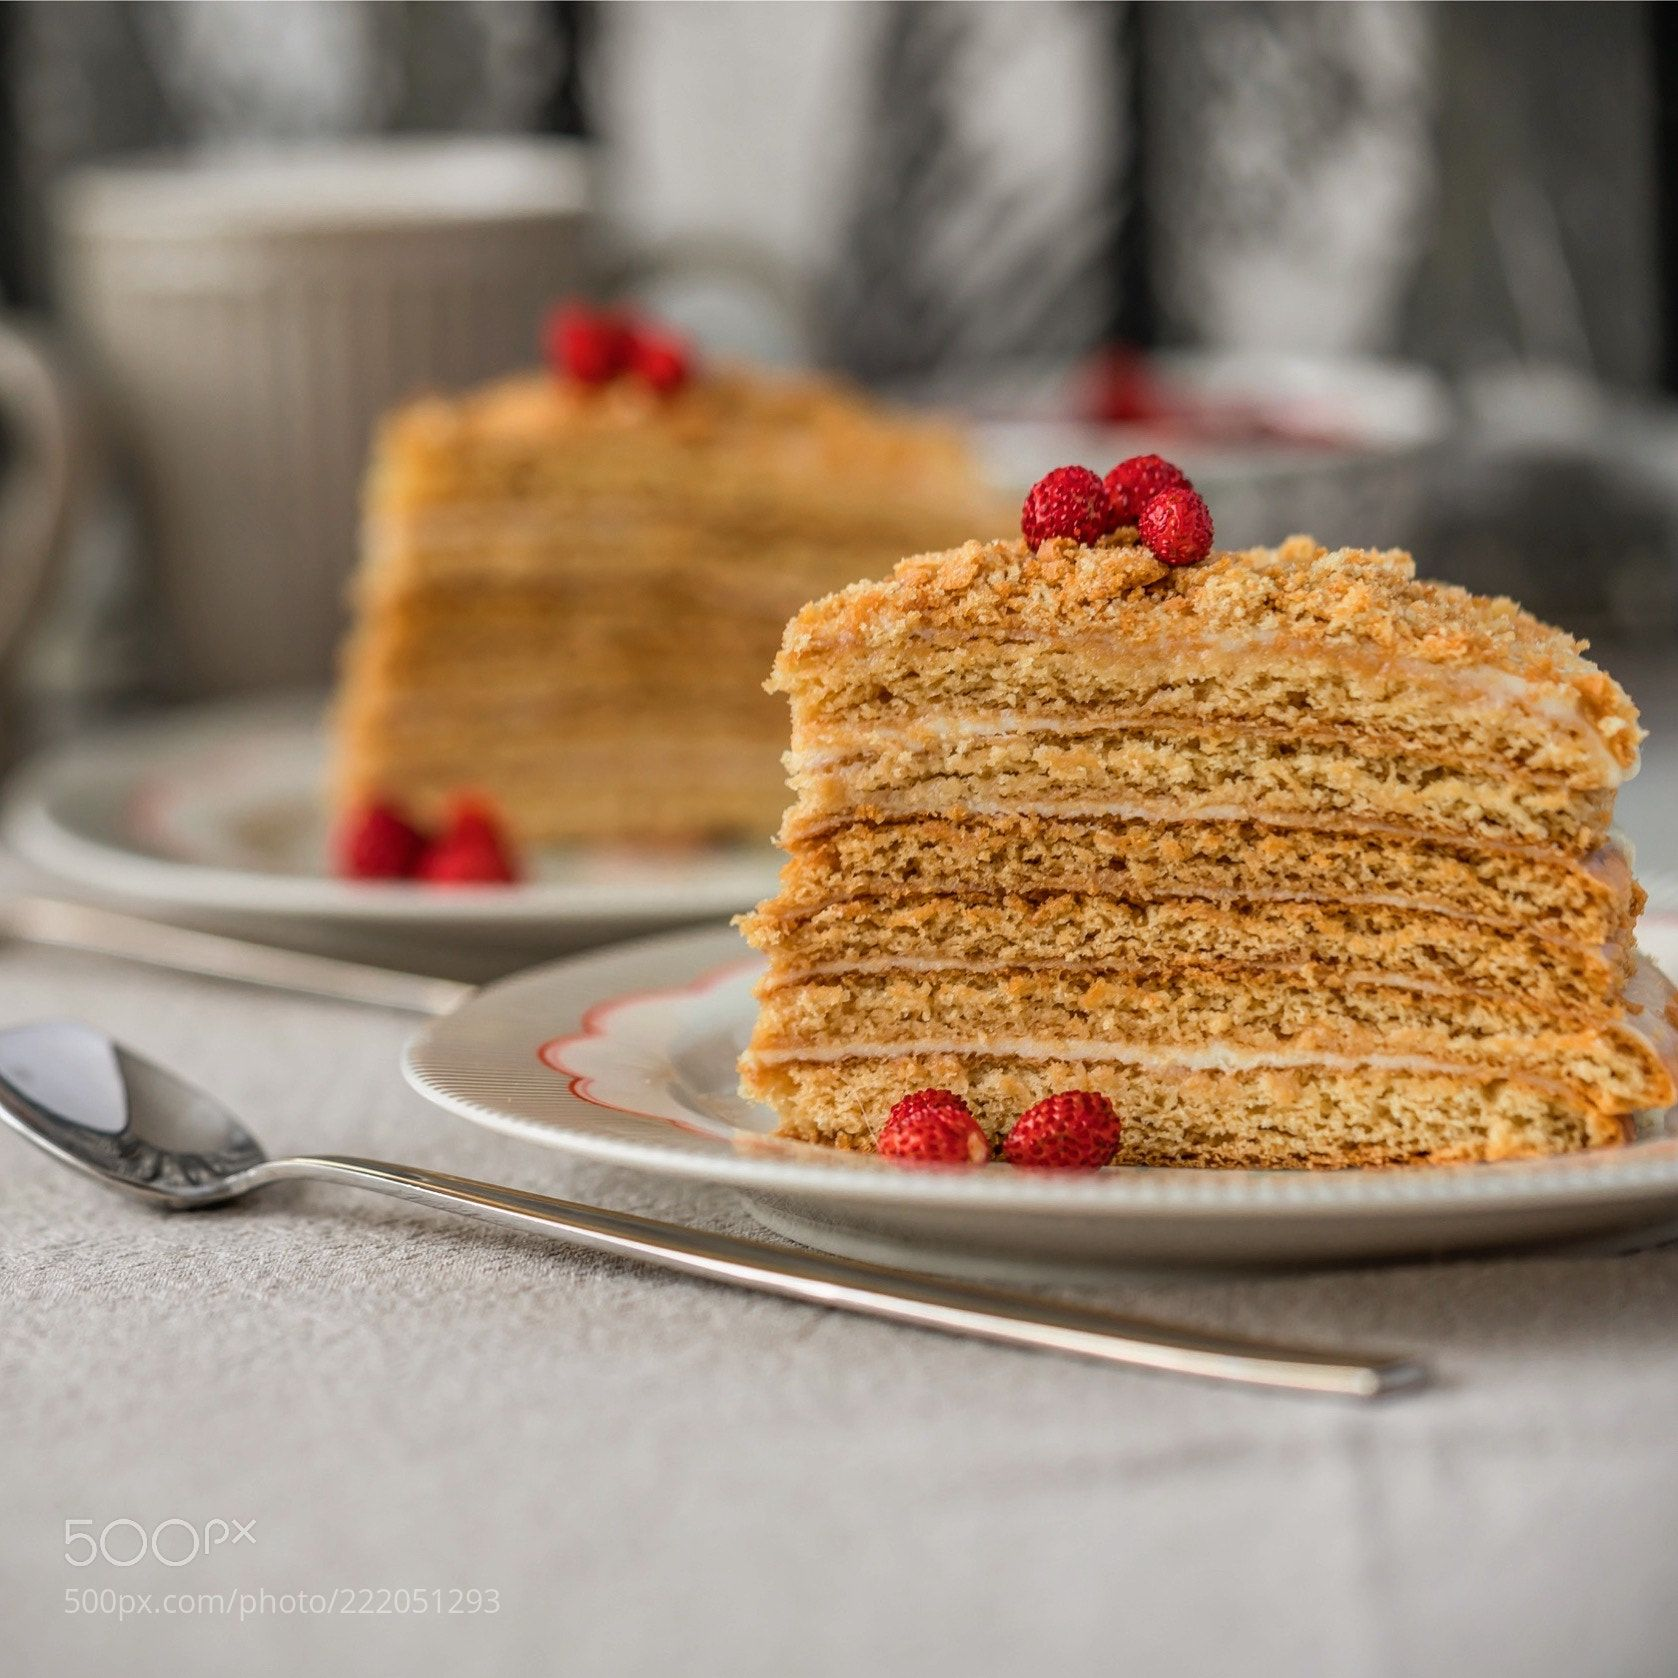 Honey layer cake. Cream cheese frosting. (Olga Photography / Moscow) #ILCE-7RM2 #food #photo #delicious